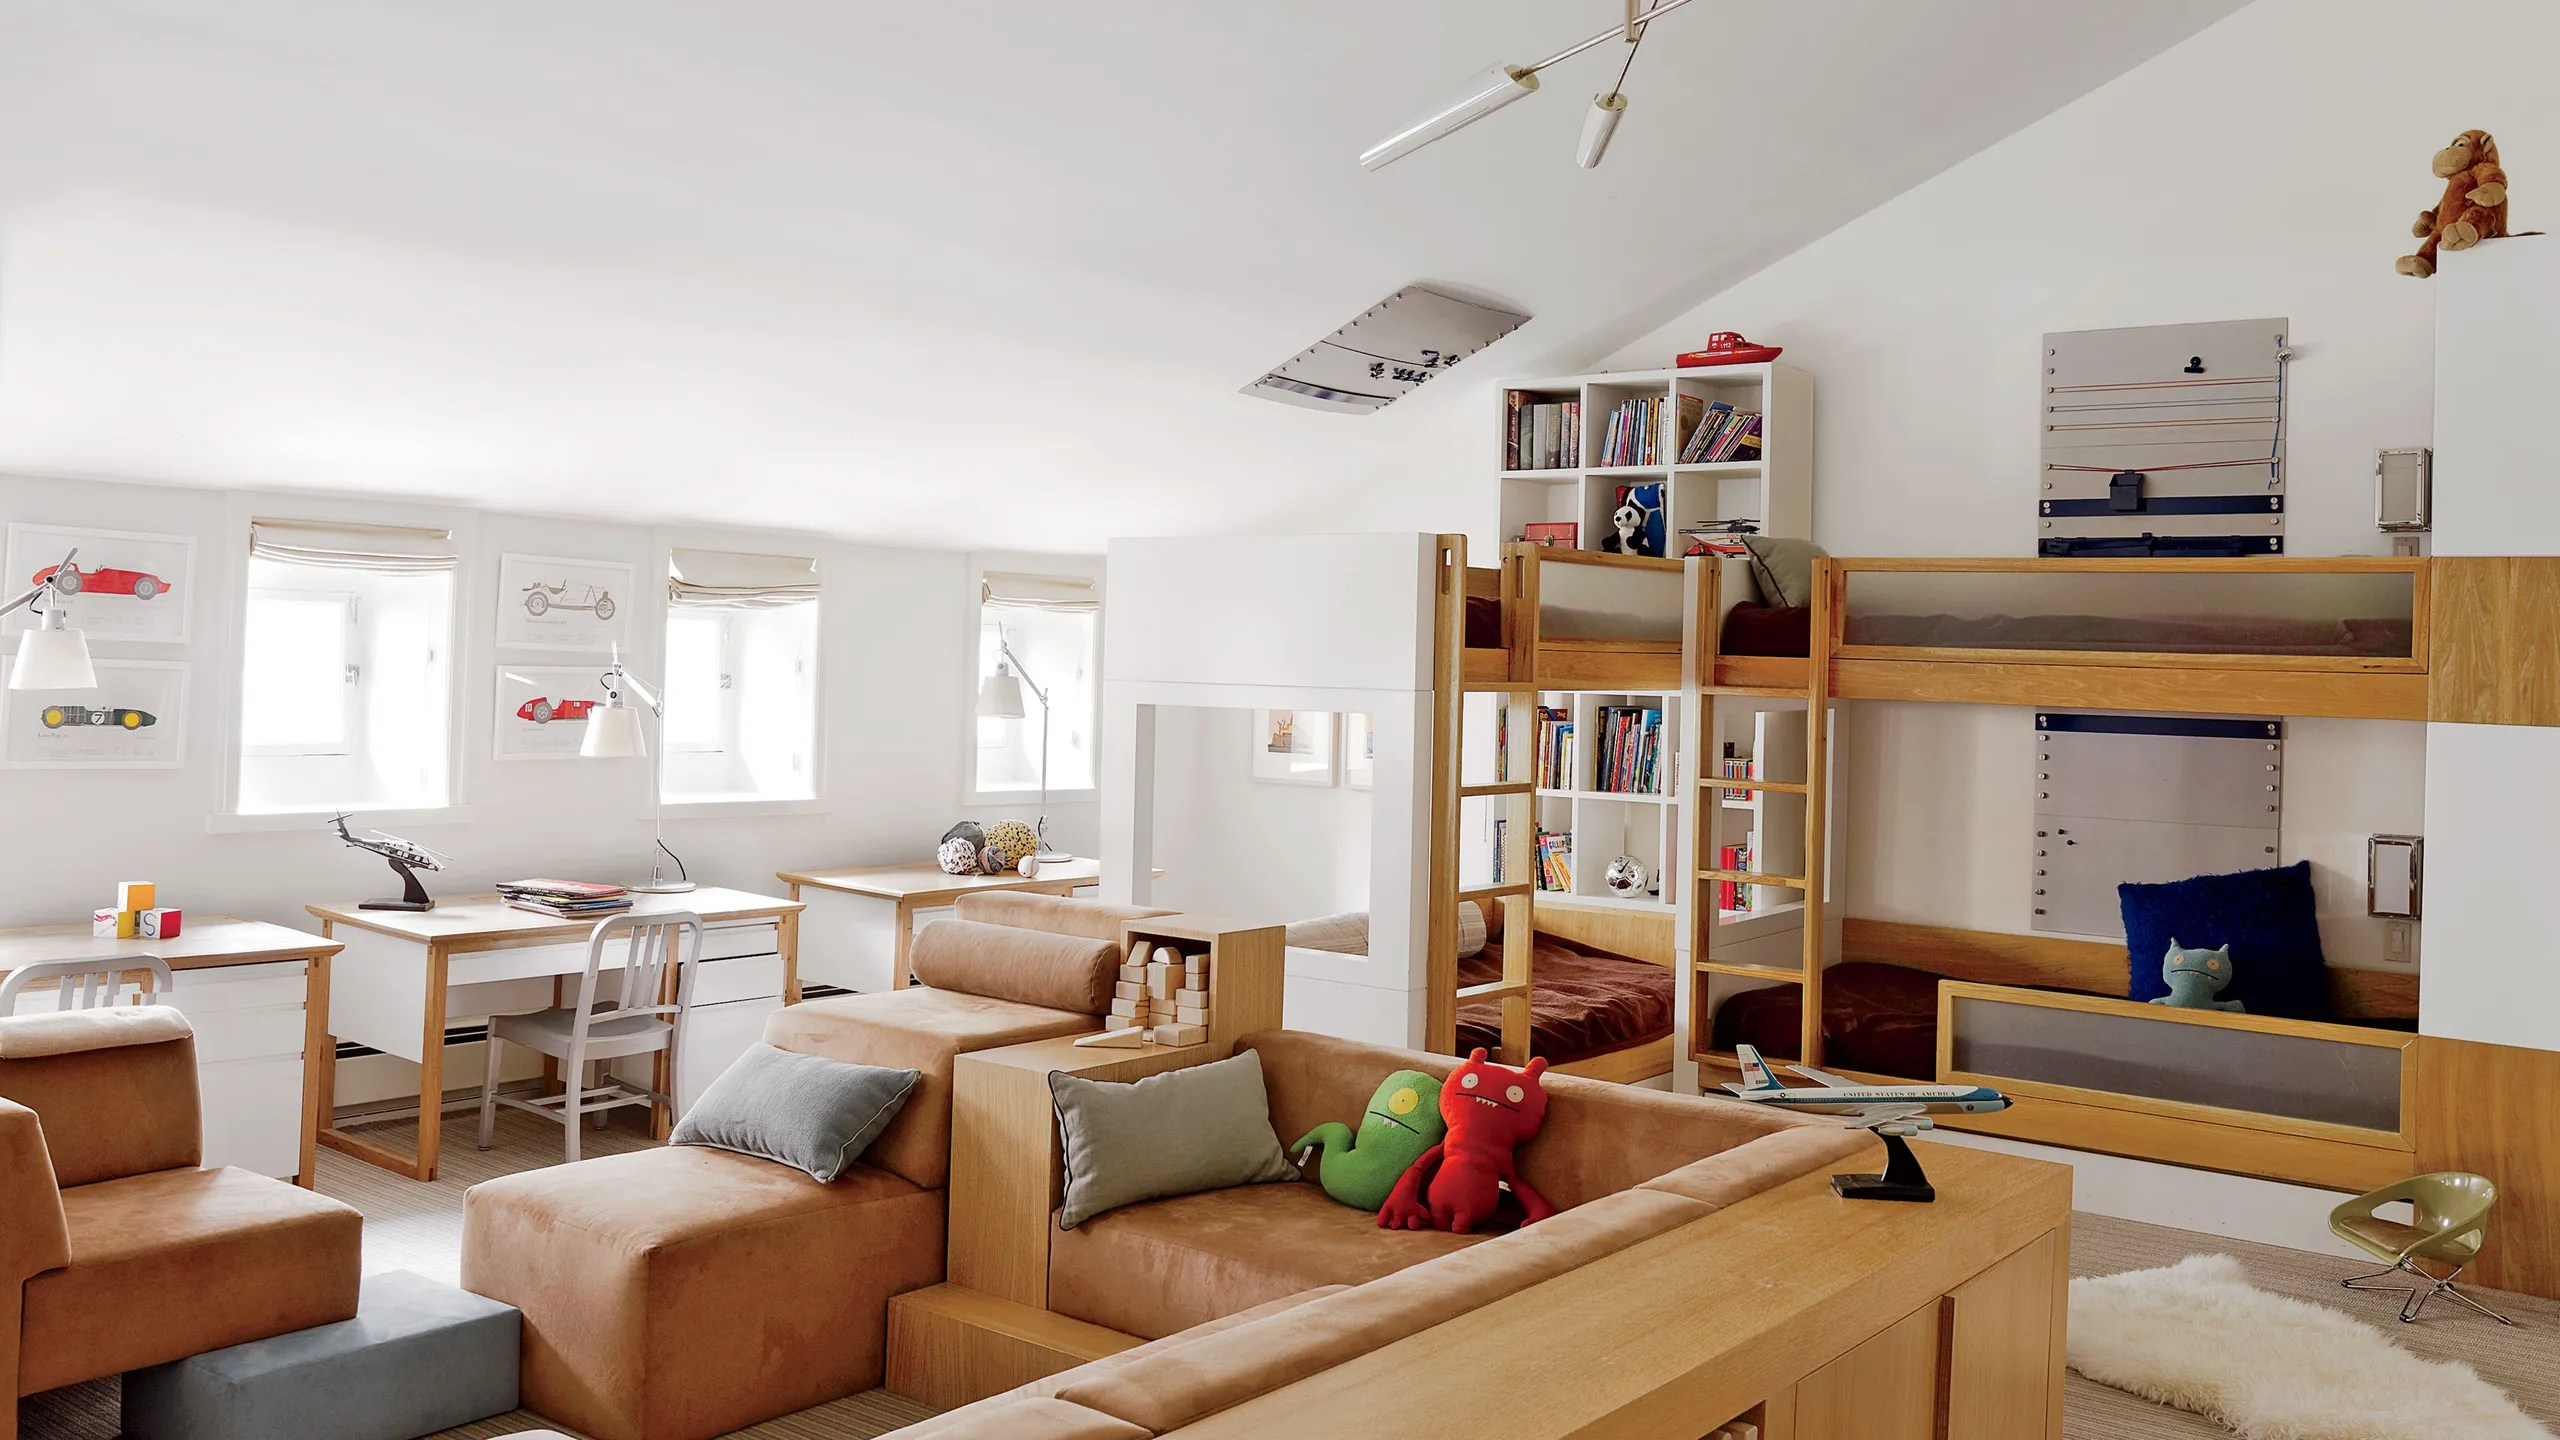 10 Loft Bed Ideas For Your Small Bedroom Architectural Digest